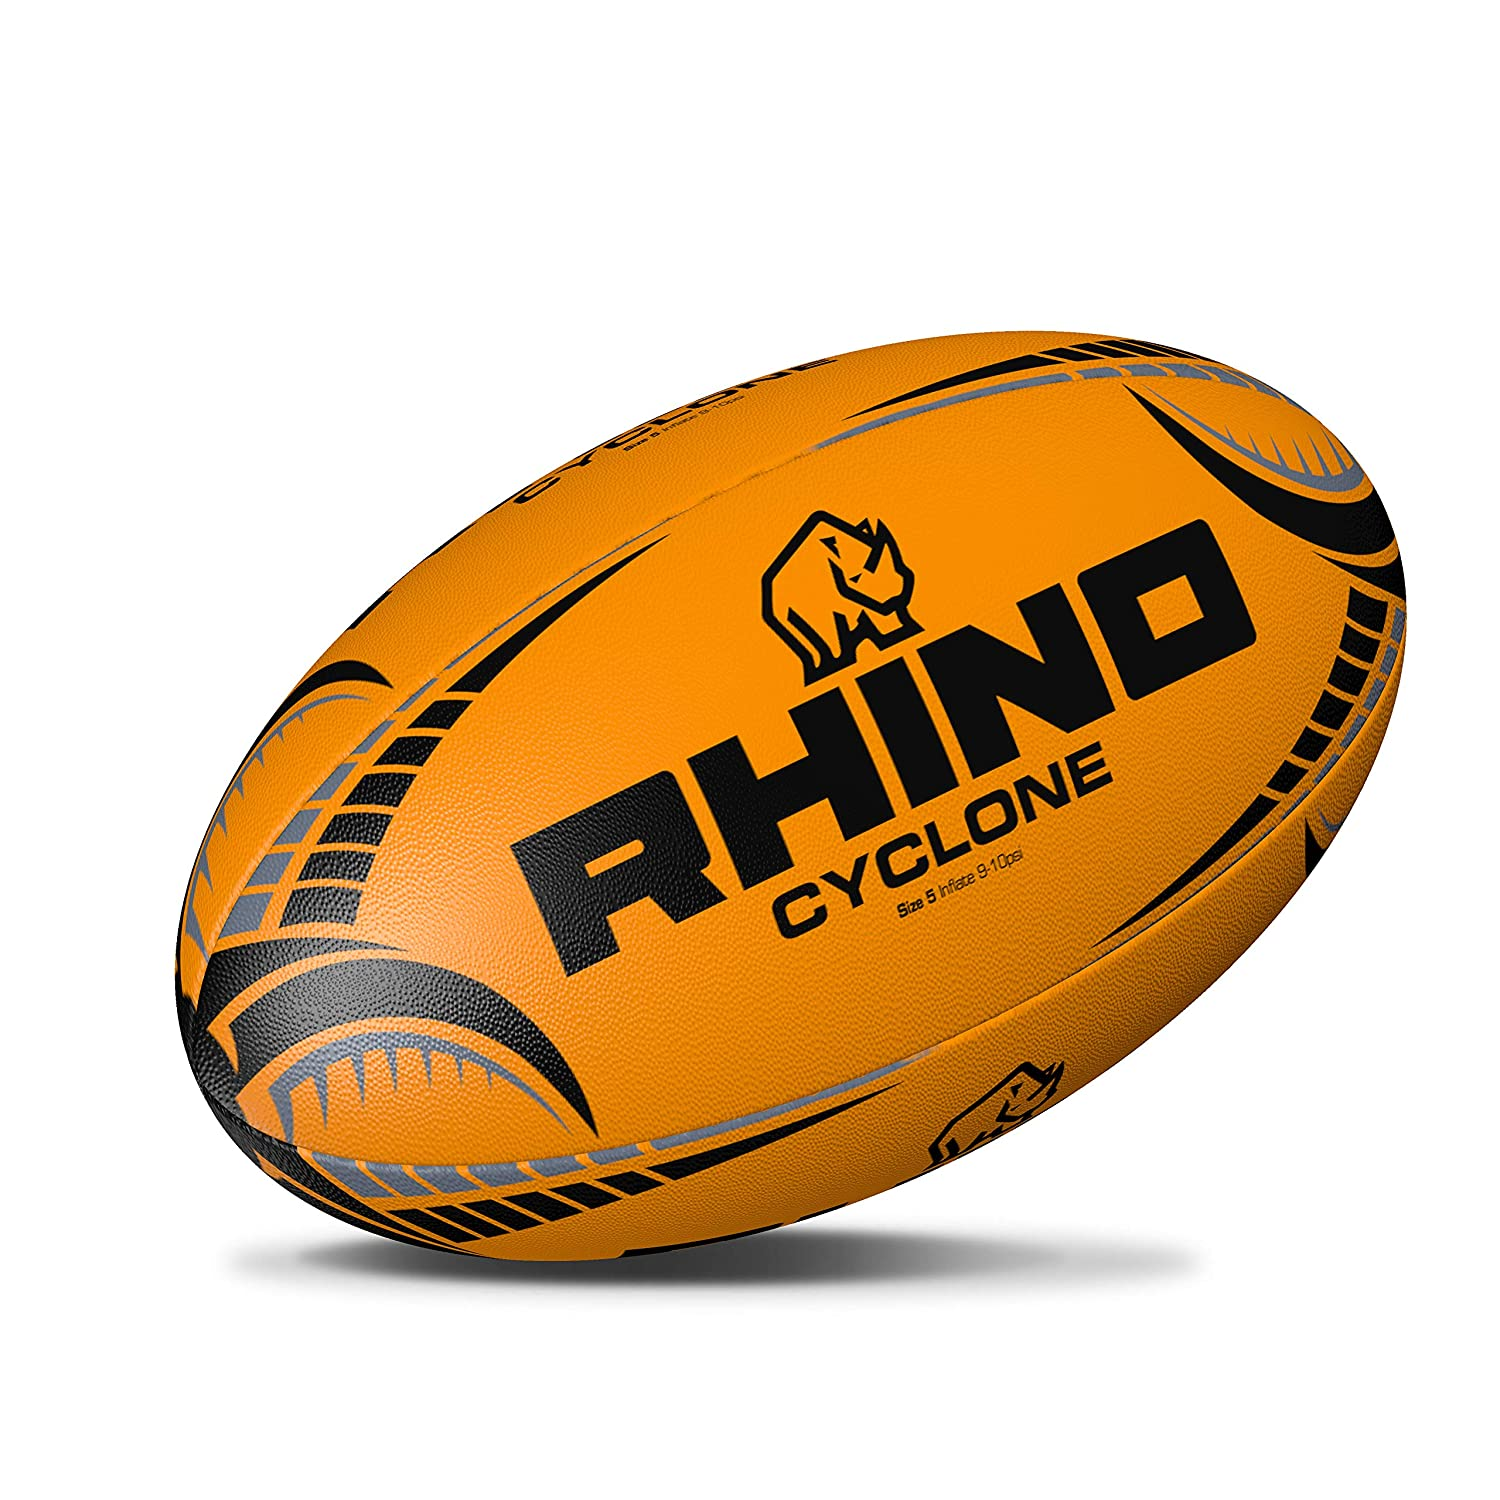 Rhino Cyclone XV d'entraînement Rugby Ballon de Rugby – Fluo Orange